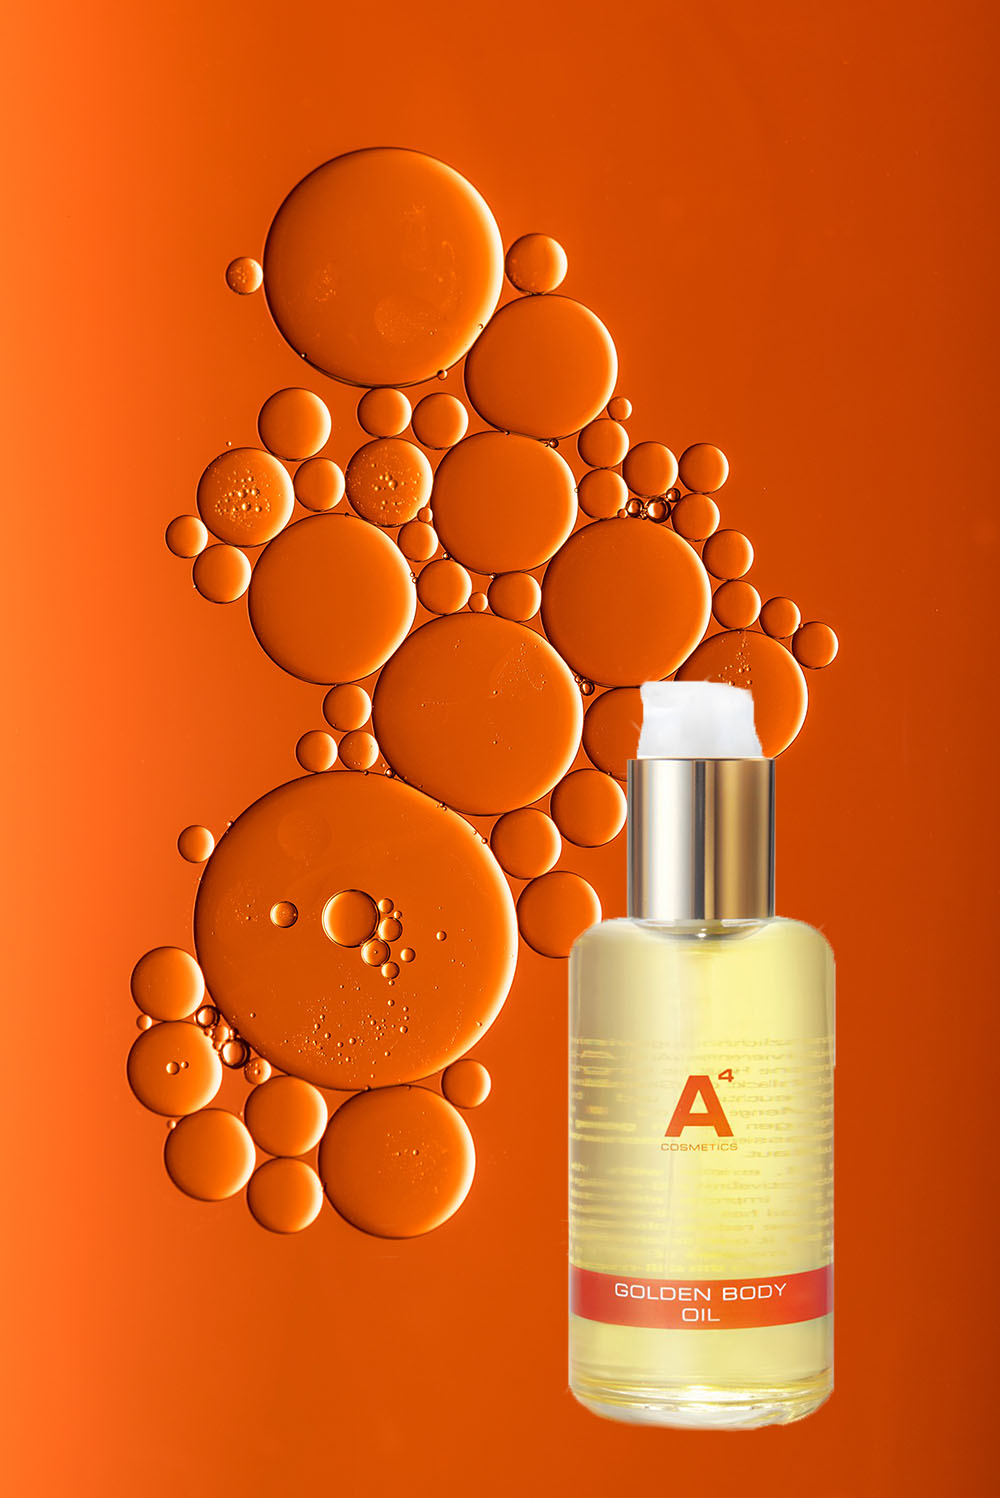 A4 Golden Body Oil